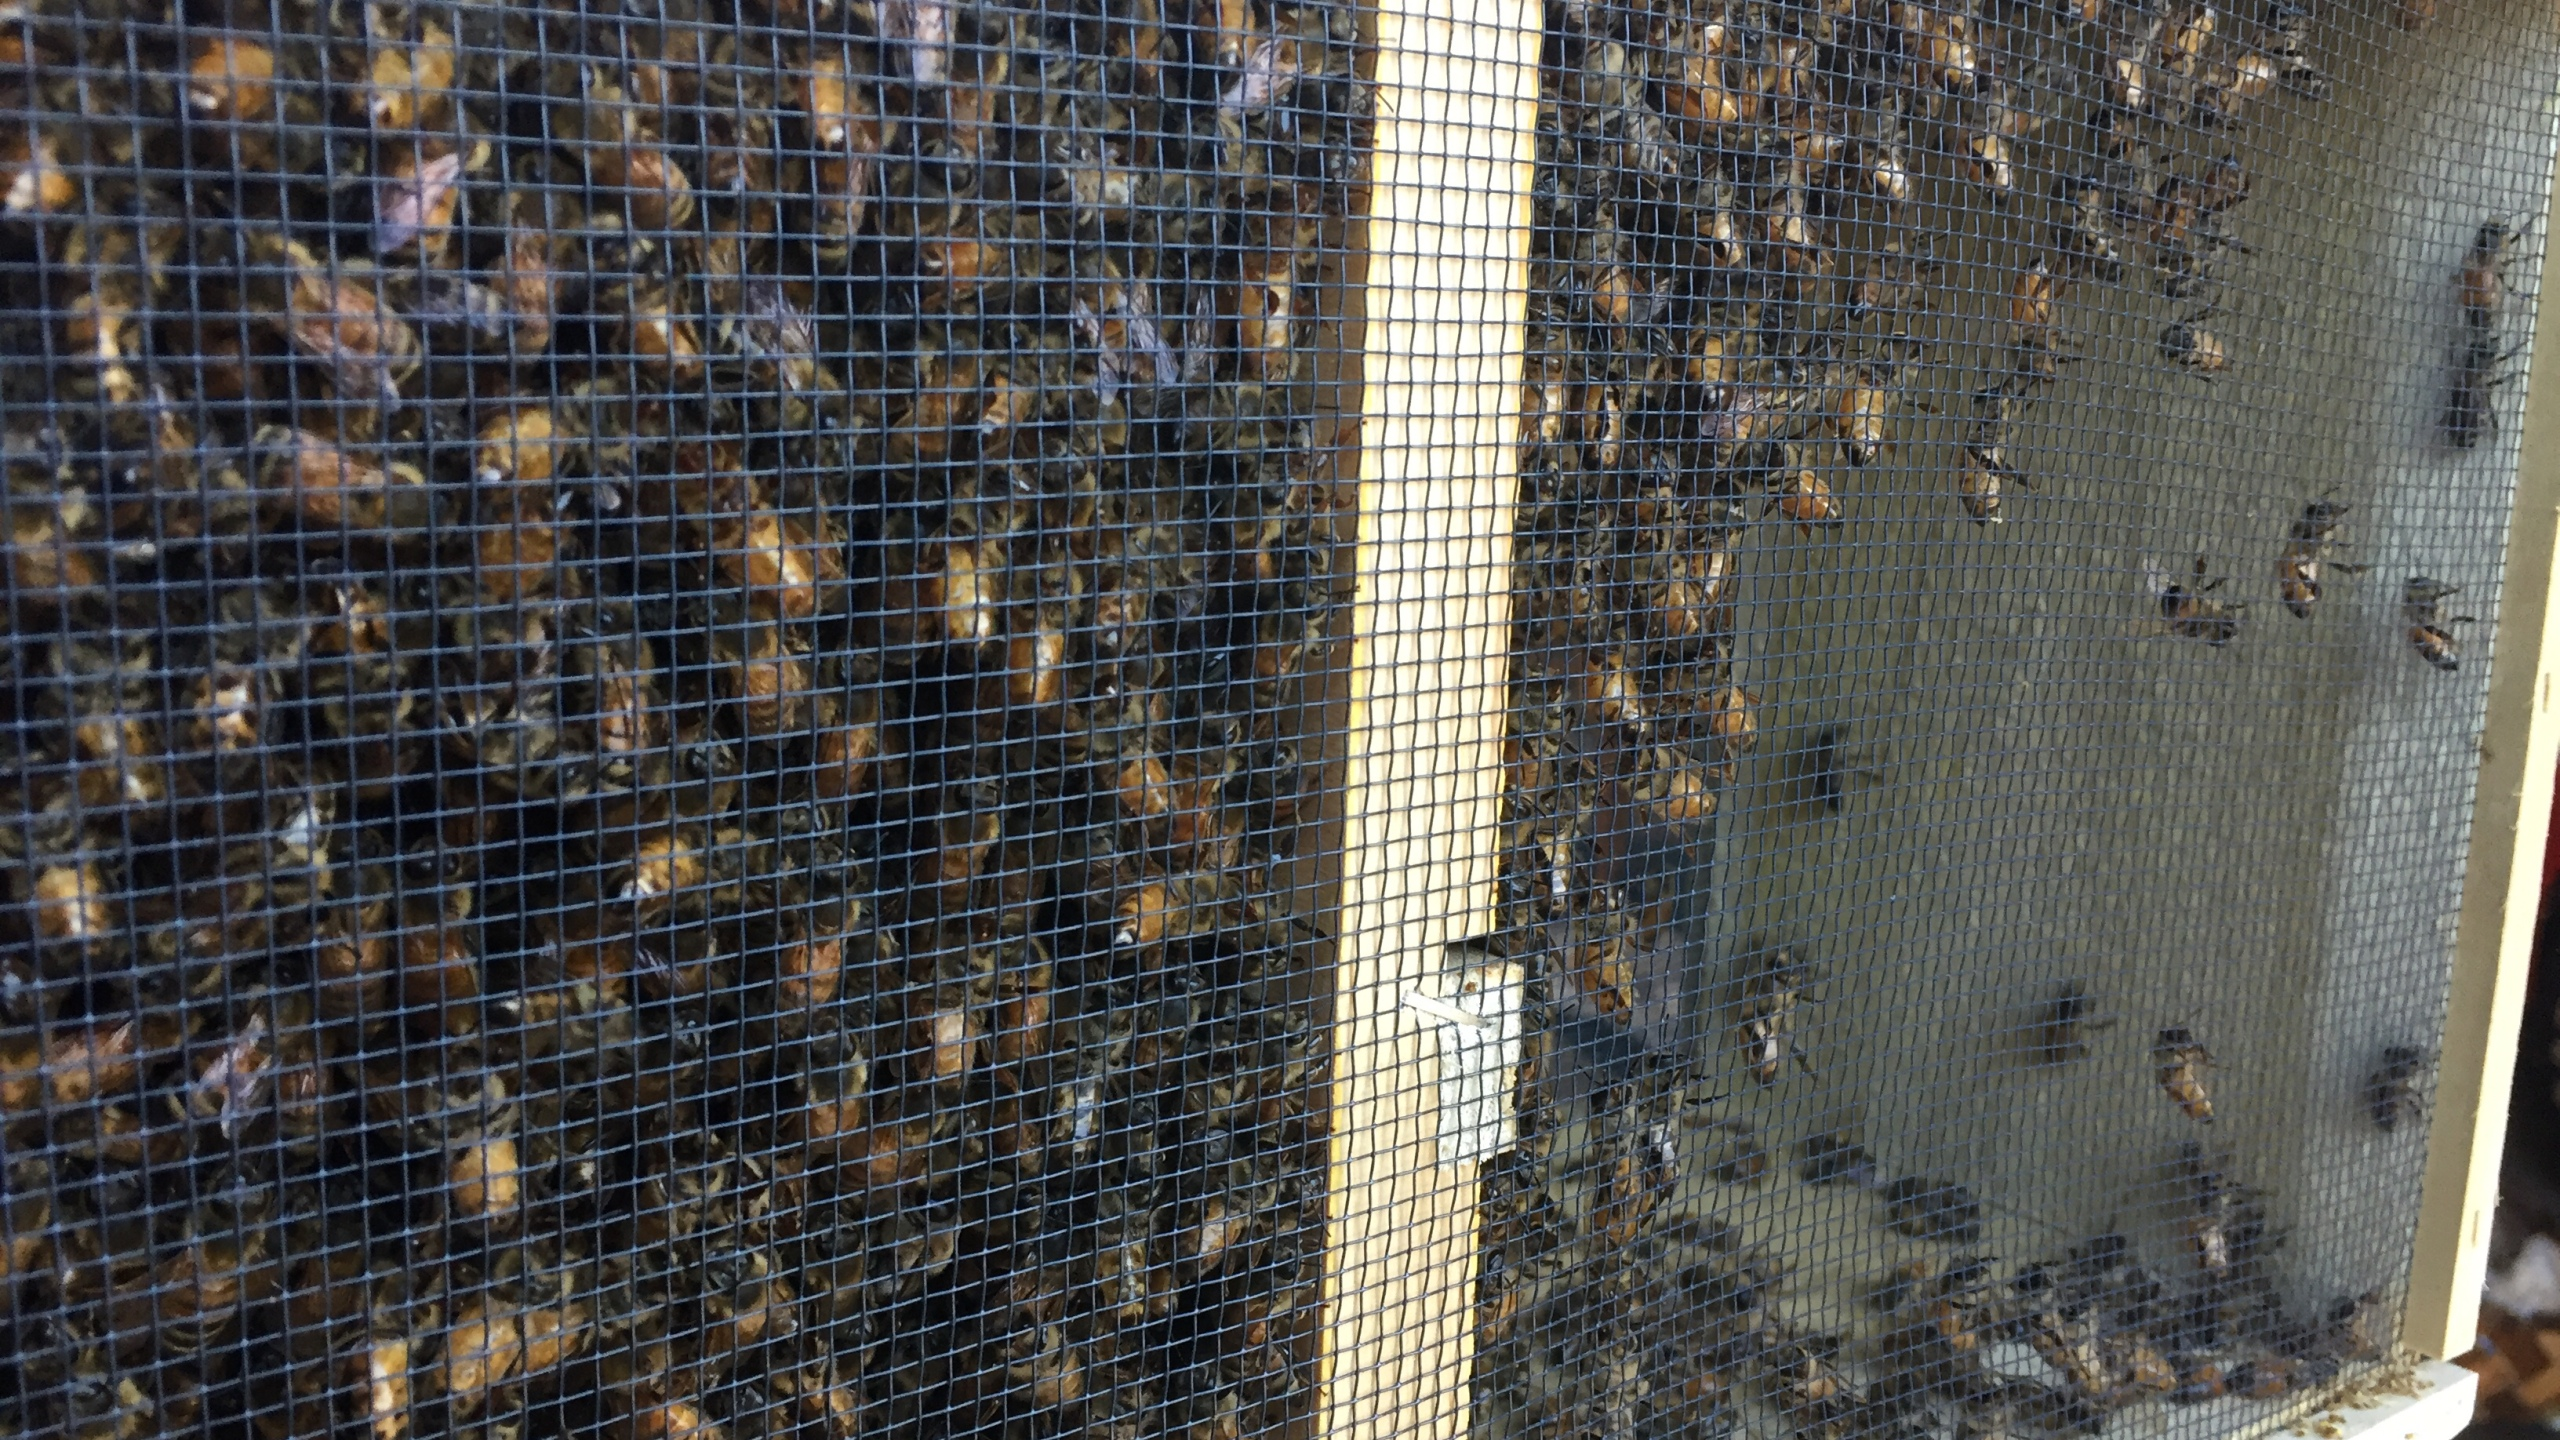 bees_354080